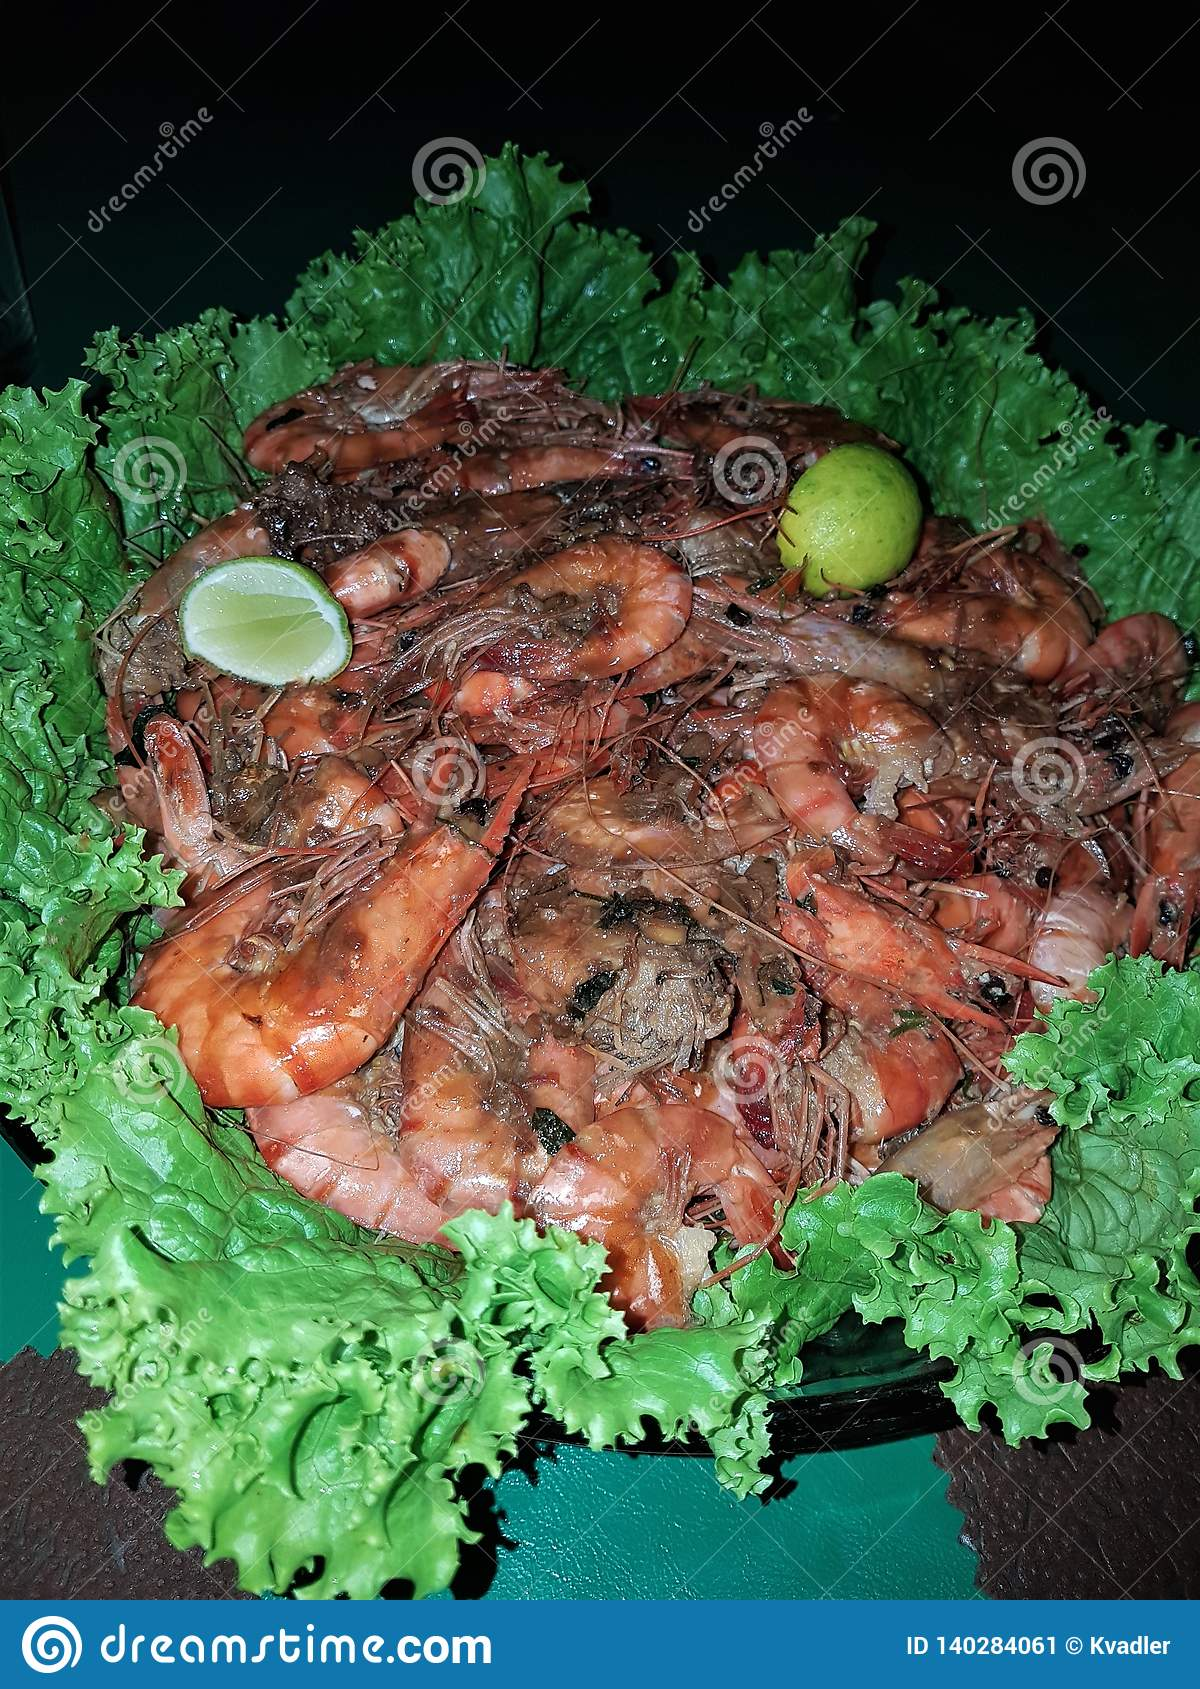 Delicious large shrimp with spices and garnish